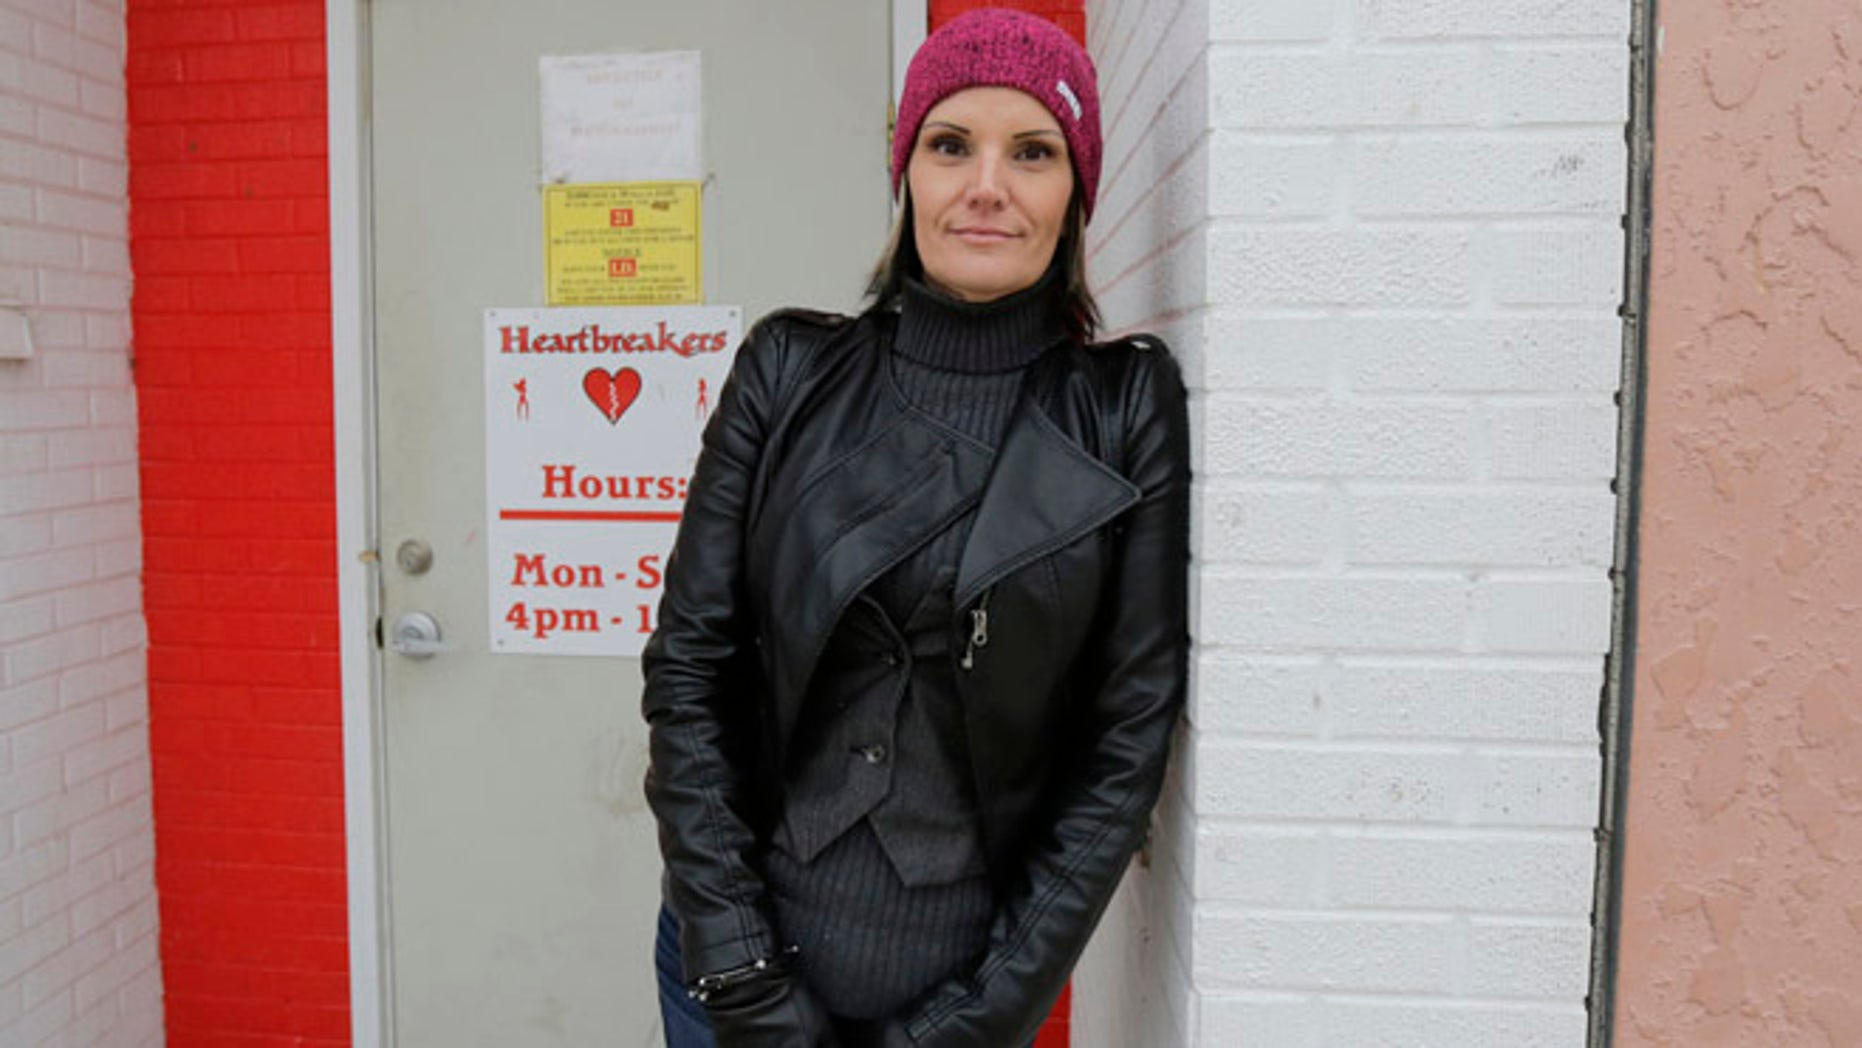 Dec. 16, 2014: Windie Lazenko, with the anti-trafficking group 4her North Dakota, stands for a photo in front of a club in Williston, N.D. As a 13-year-old runaway, Lazenko says she was bought and sold for sex. Prostitution, pornography and strip clubs followed. Then she walked away from it all.